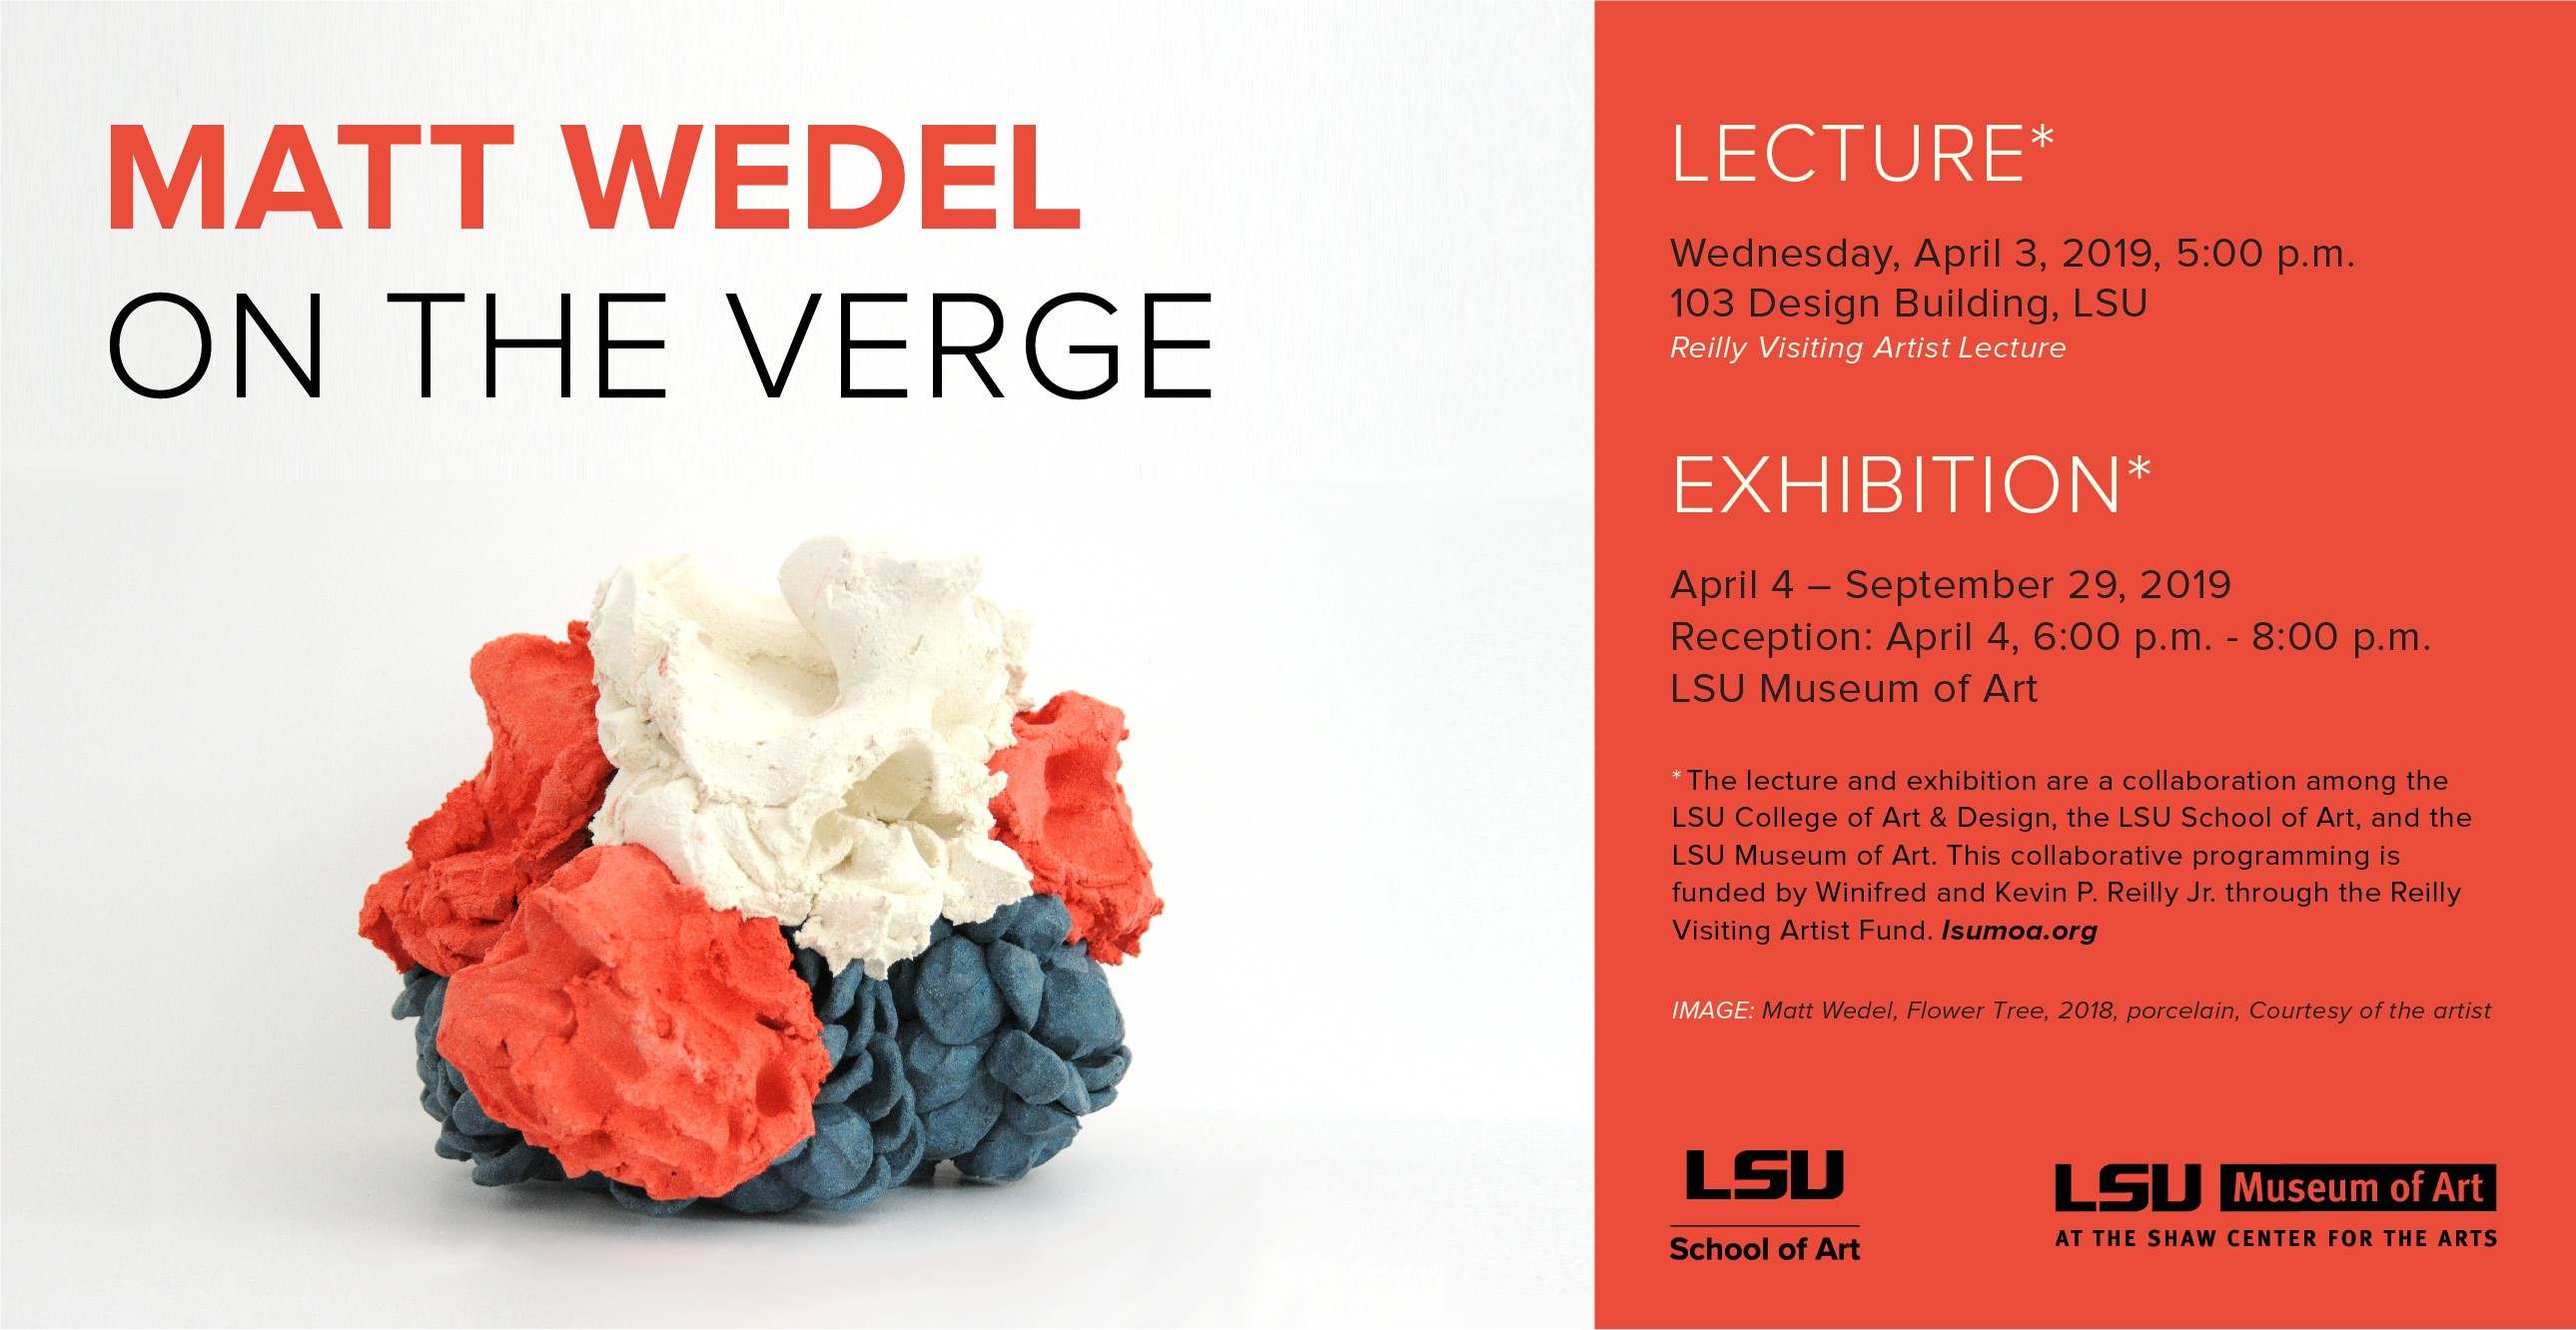 Matt Wedel Lecture April 3, 2019 at 5 p.m. Ceramic sculpture with red, white, and blue